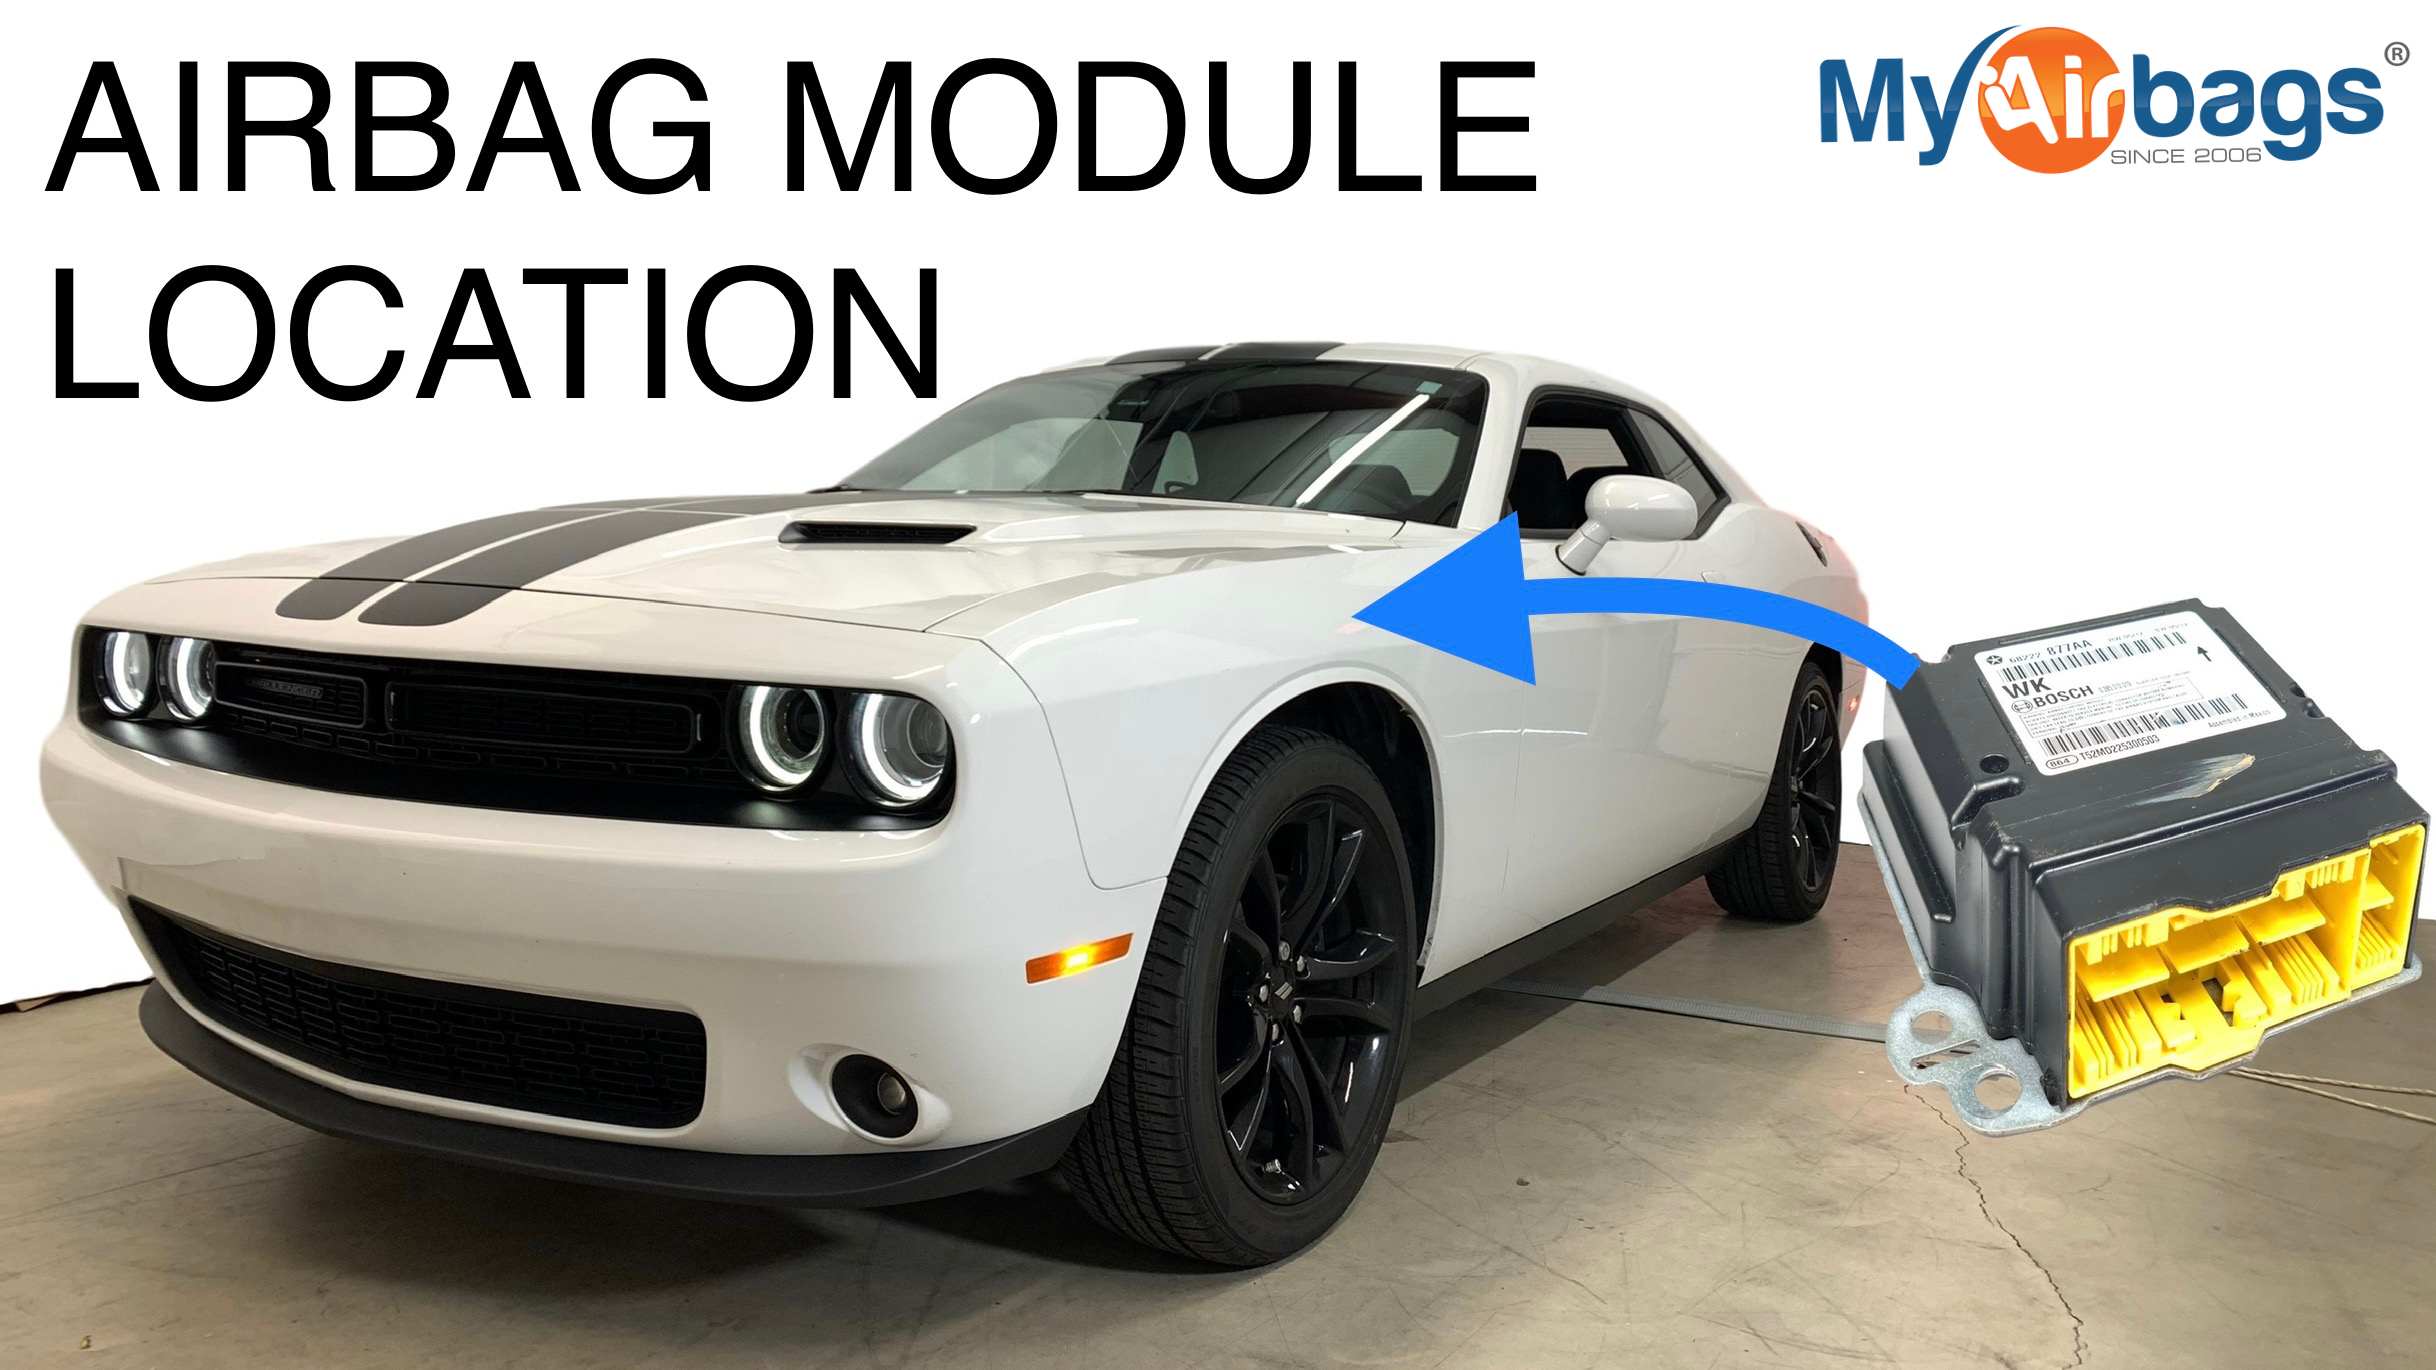 small resolution of srs airbag control module removal instructions video myairbags jeep liberty airbag control module location free download wiring